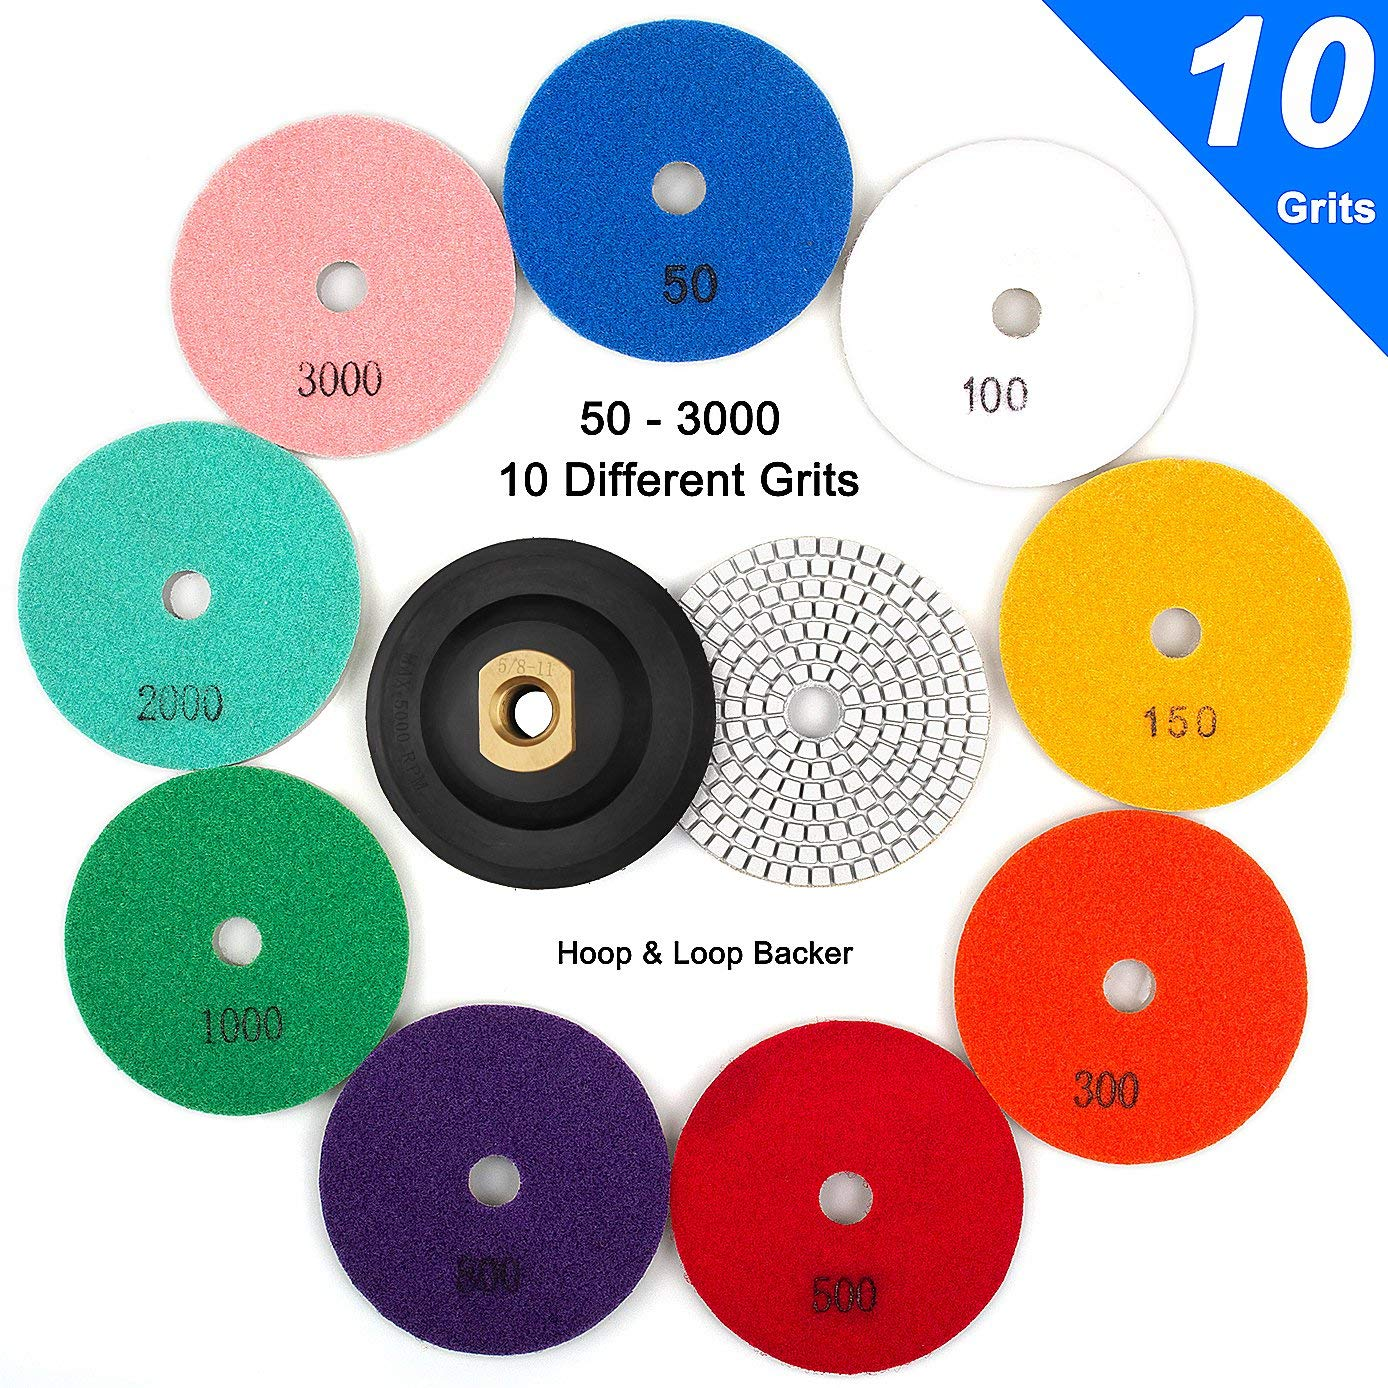 "CenterZ 4"" Wet Diamond Polishing Pad, 10 Pads 50 to 3000 Grit Set with 5/8"" 11 Arbor Polisher Velcro Backing Plate - Ideal Buffing Kit for Granite Concrete Marble Stone Countertop Tile Floor Grinder"